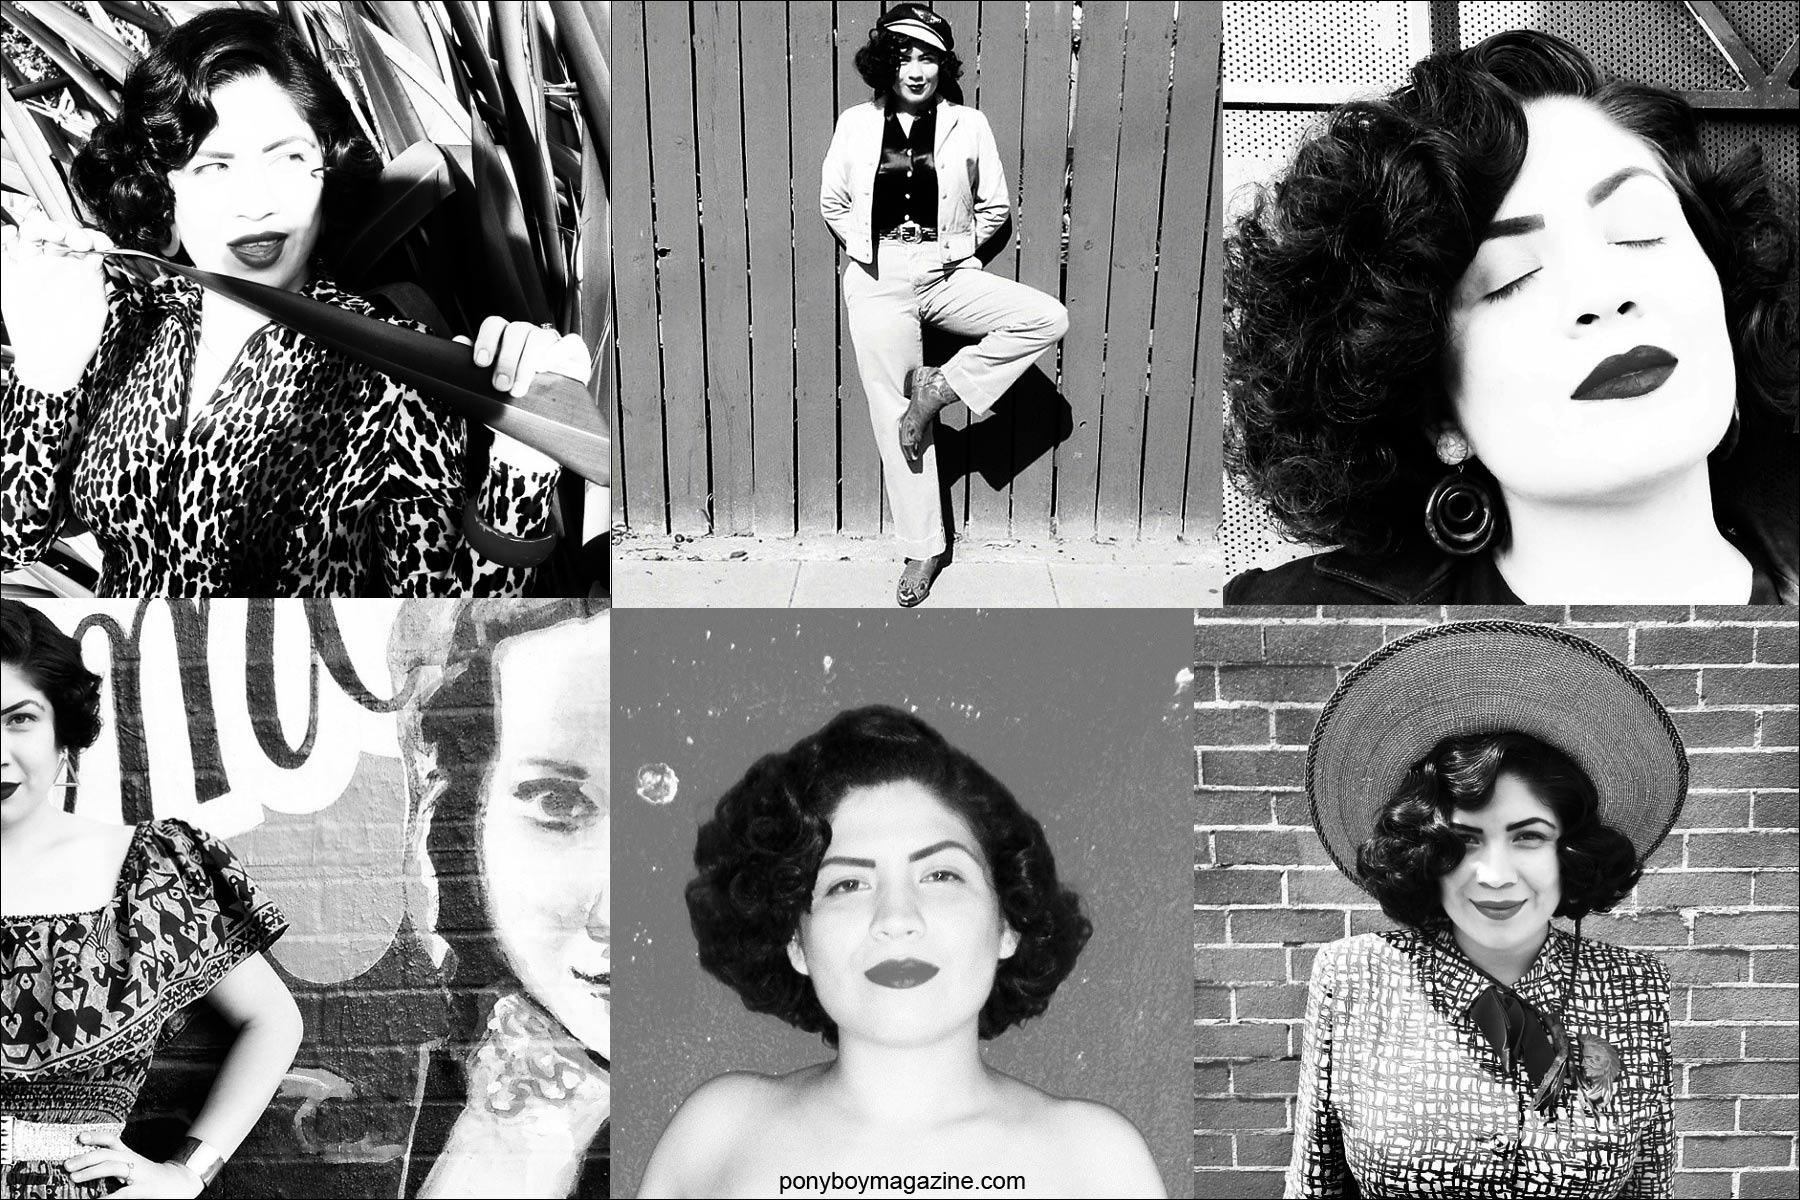 B&W photos of Mrs. California Sweetheart, from Santa Muerte Trading Co. Ponyboy magazine NY.